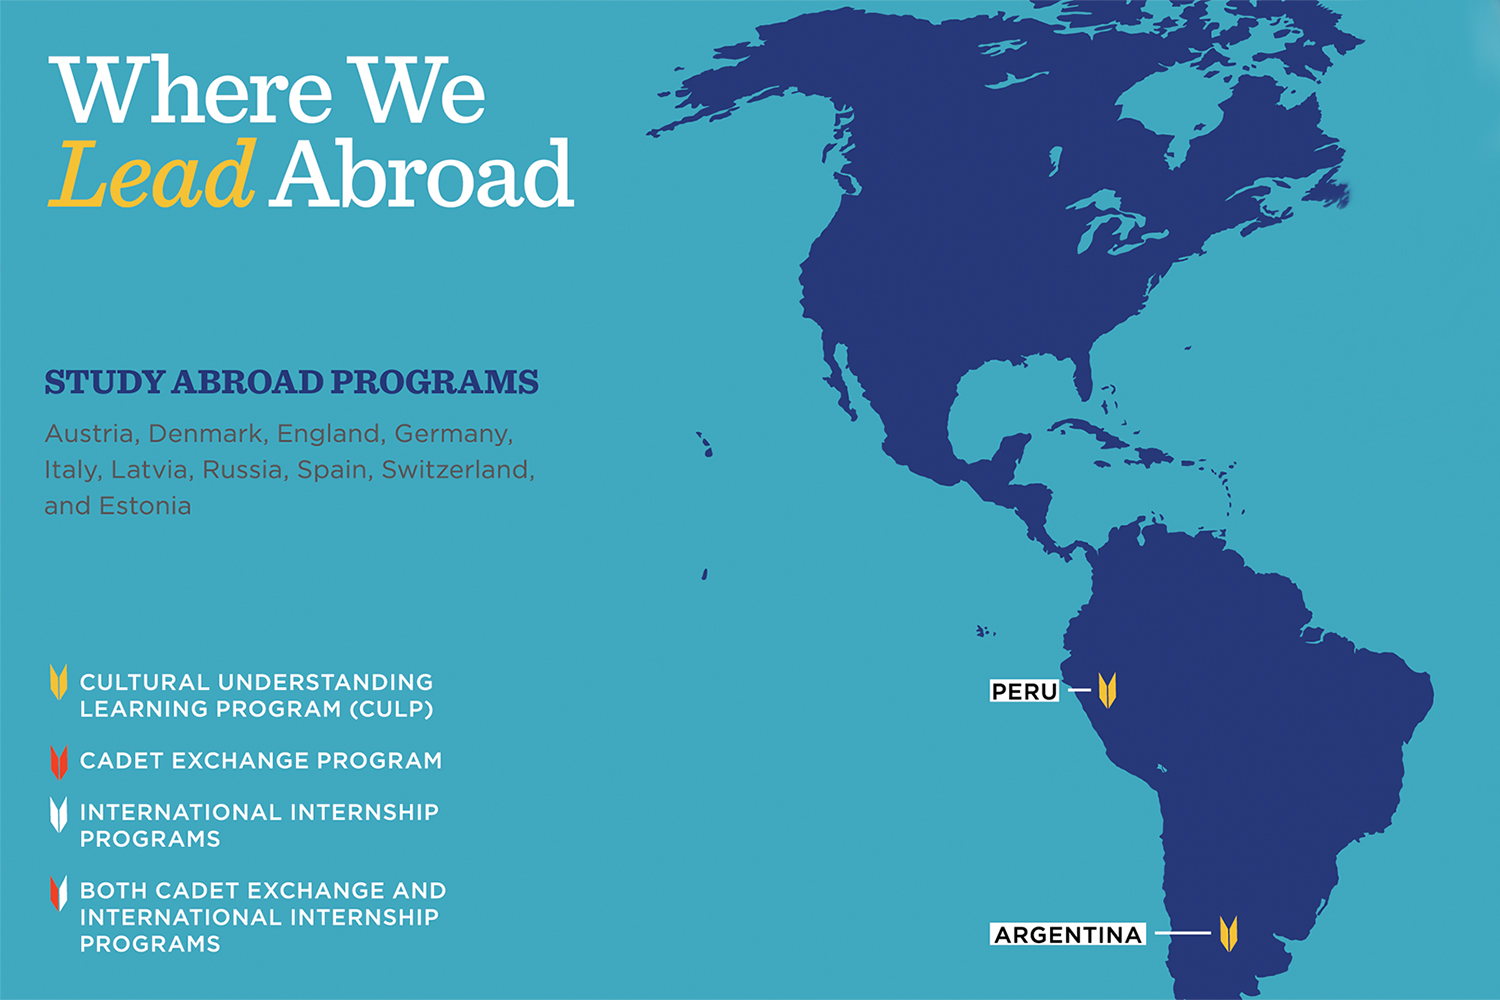 Study Abroad locations - Americas